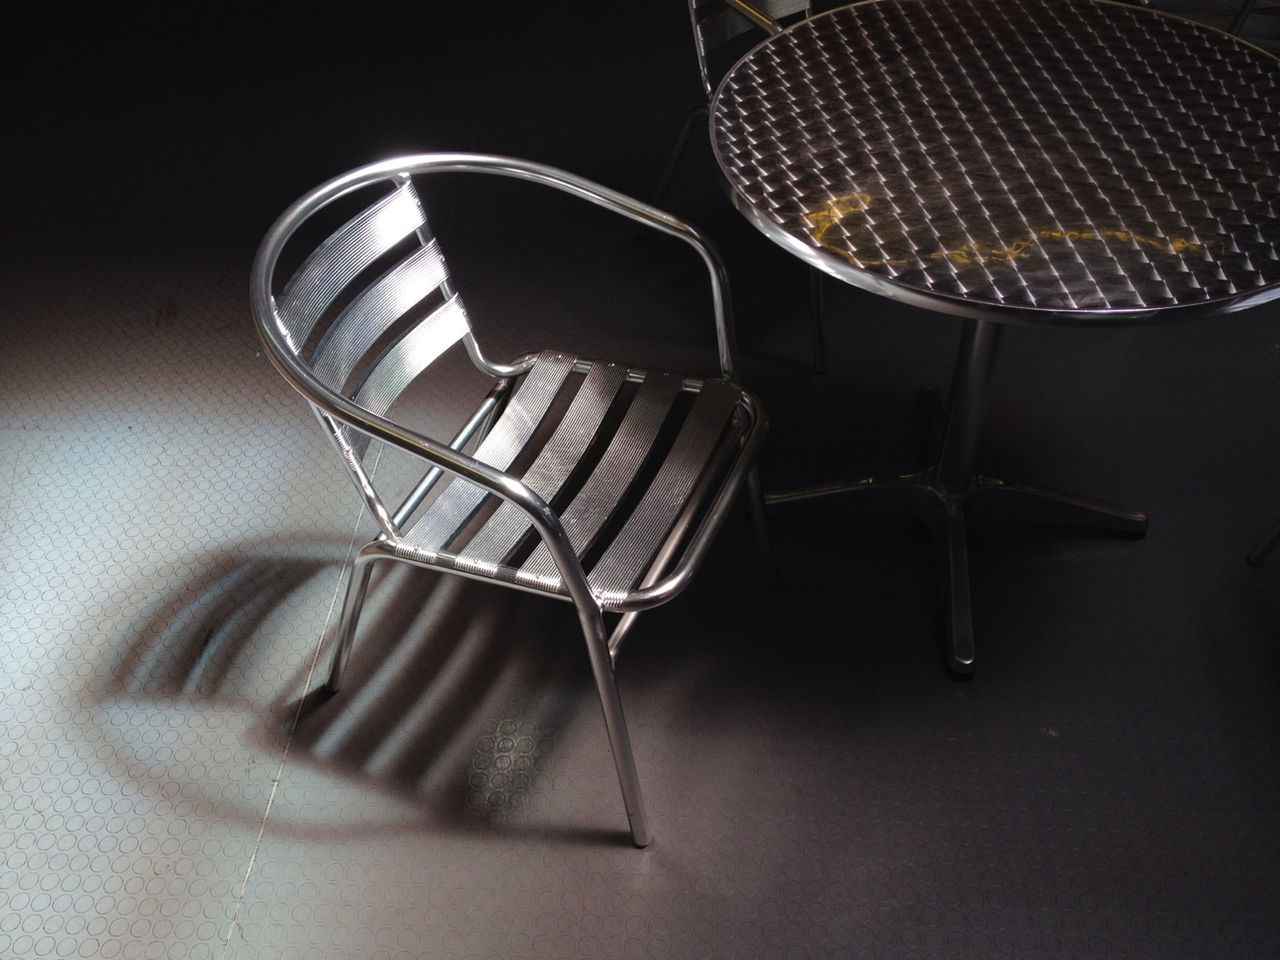 Metallic chair and table in cafe